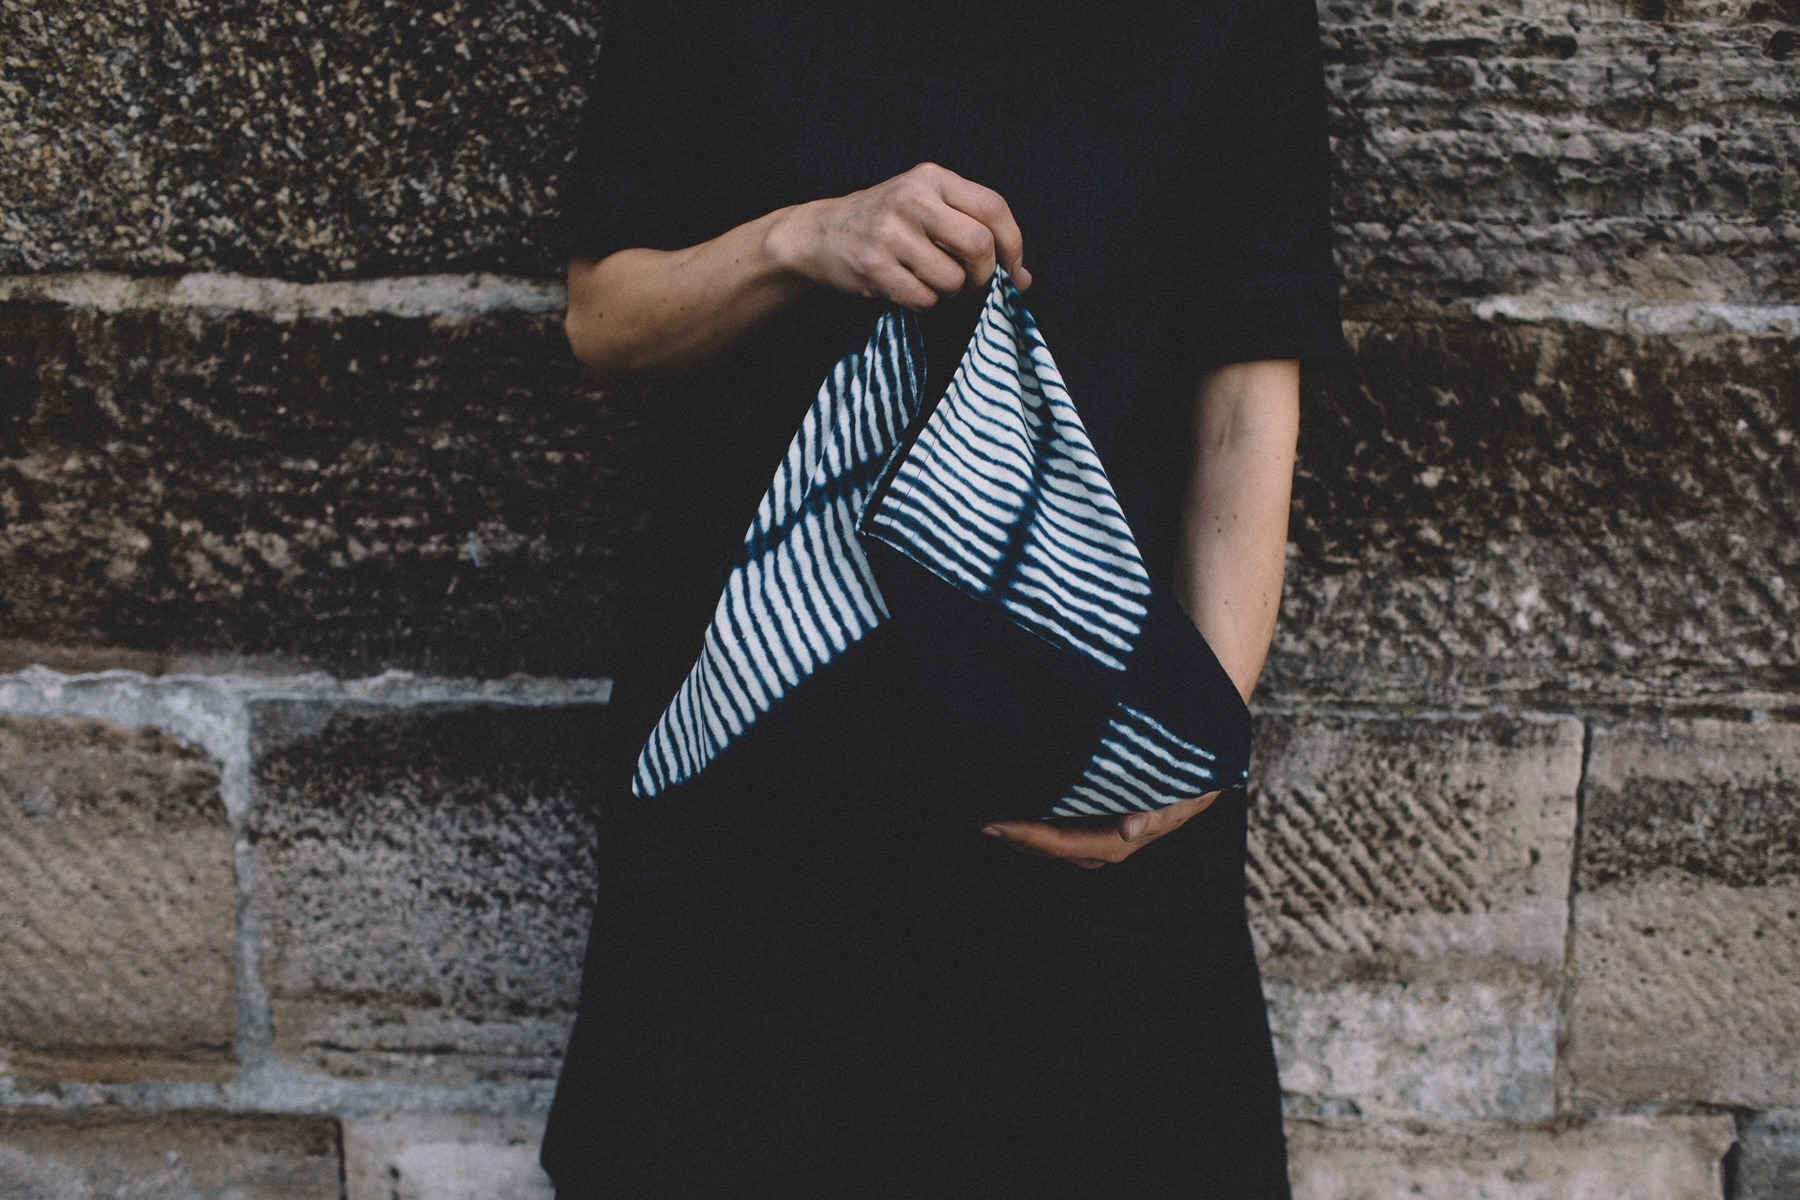 Model holding a cloth bag with shibori design